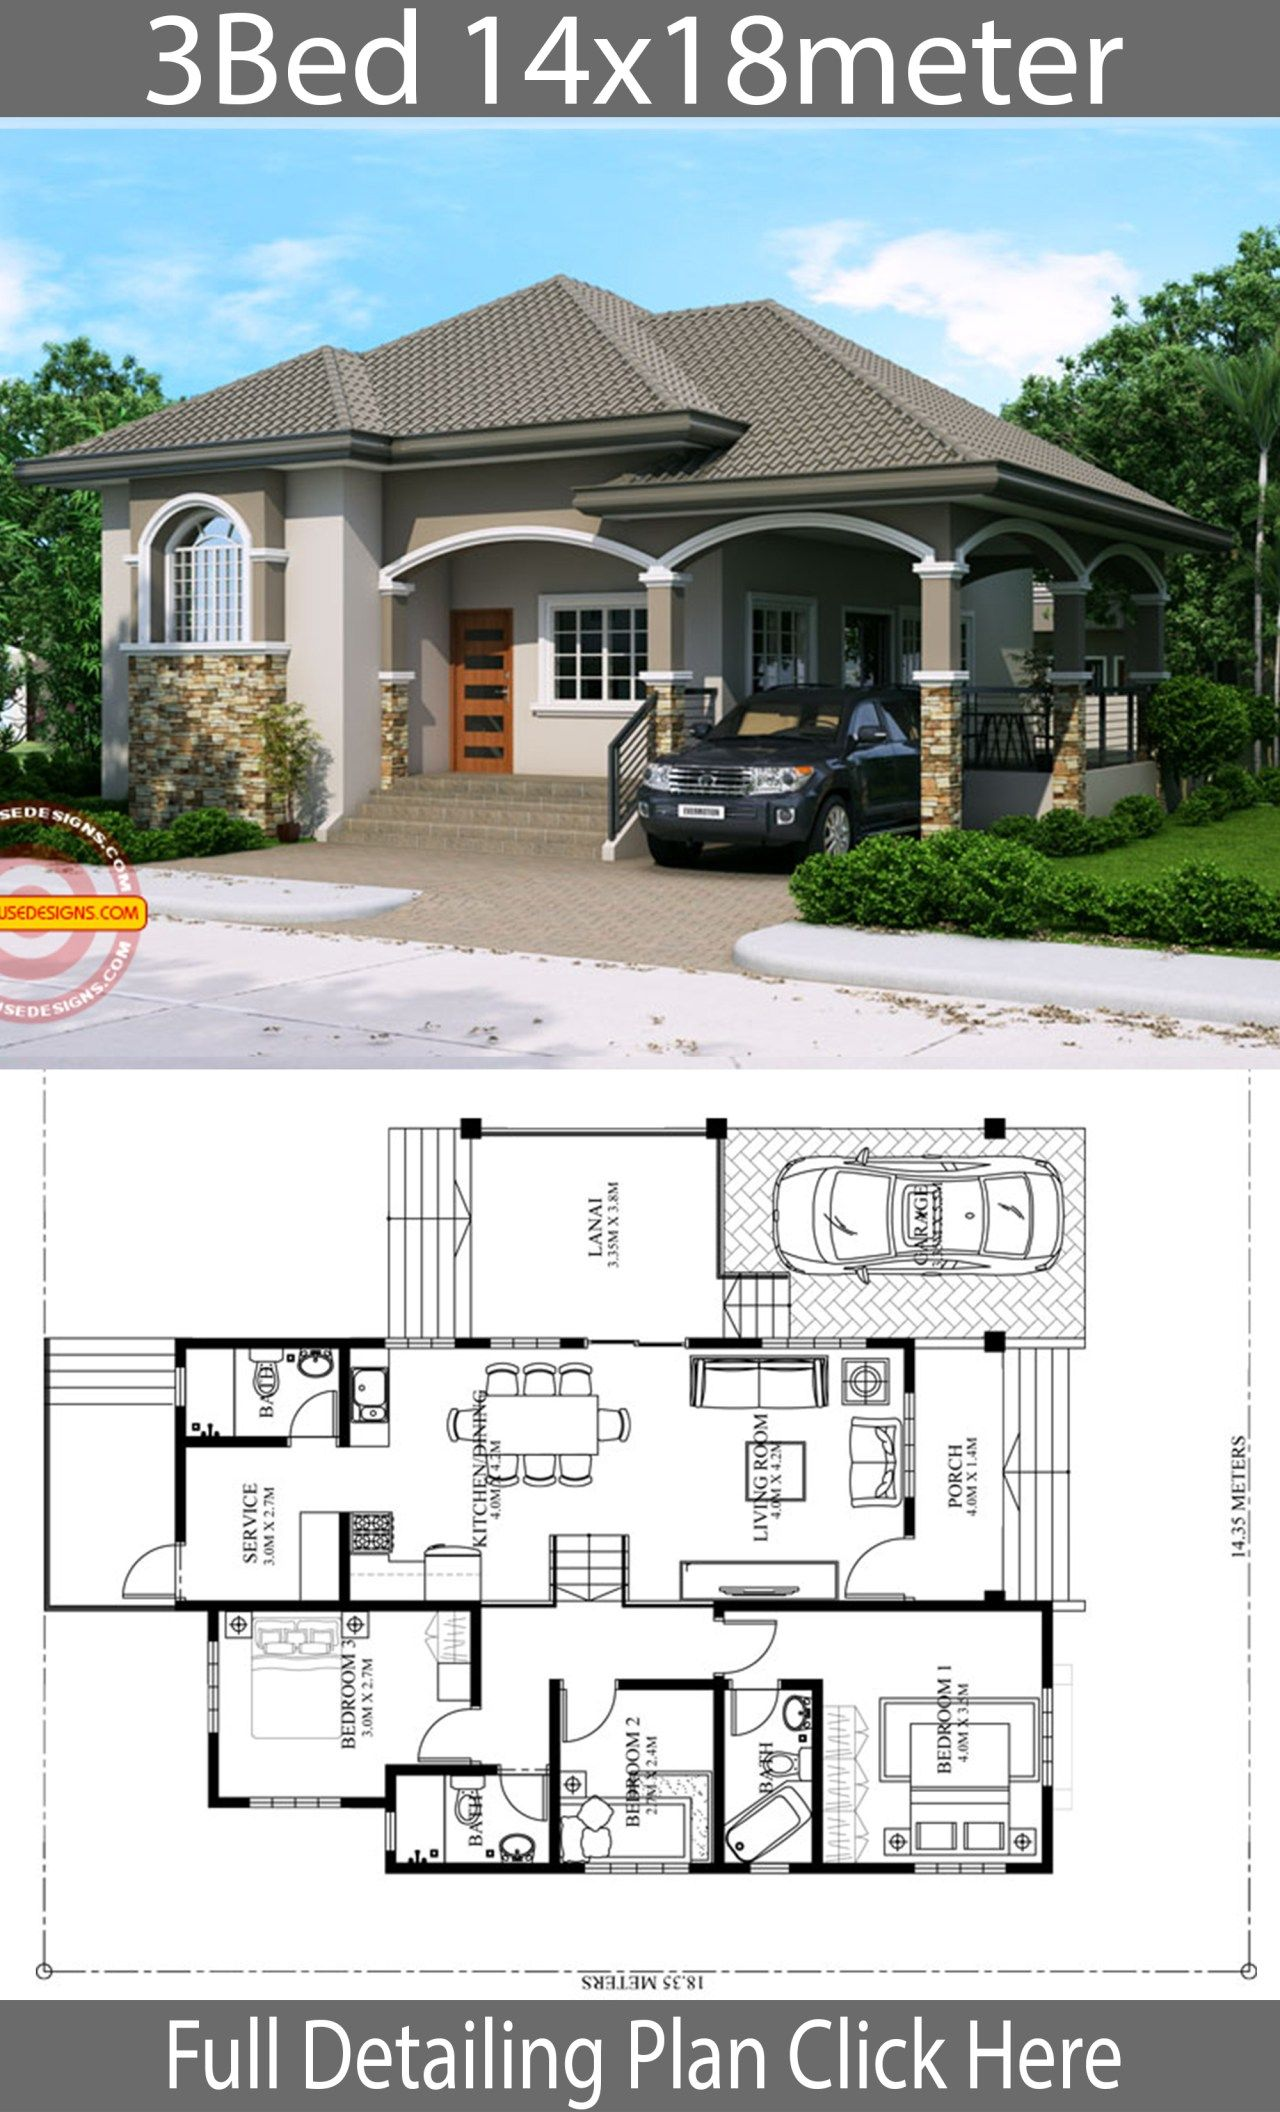 Home Design Plan 14x18m With 3 Bedrooms Home Ideas House Plan Gallery Bungalow House Plans Model House Plan